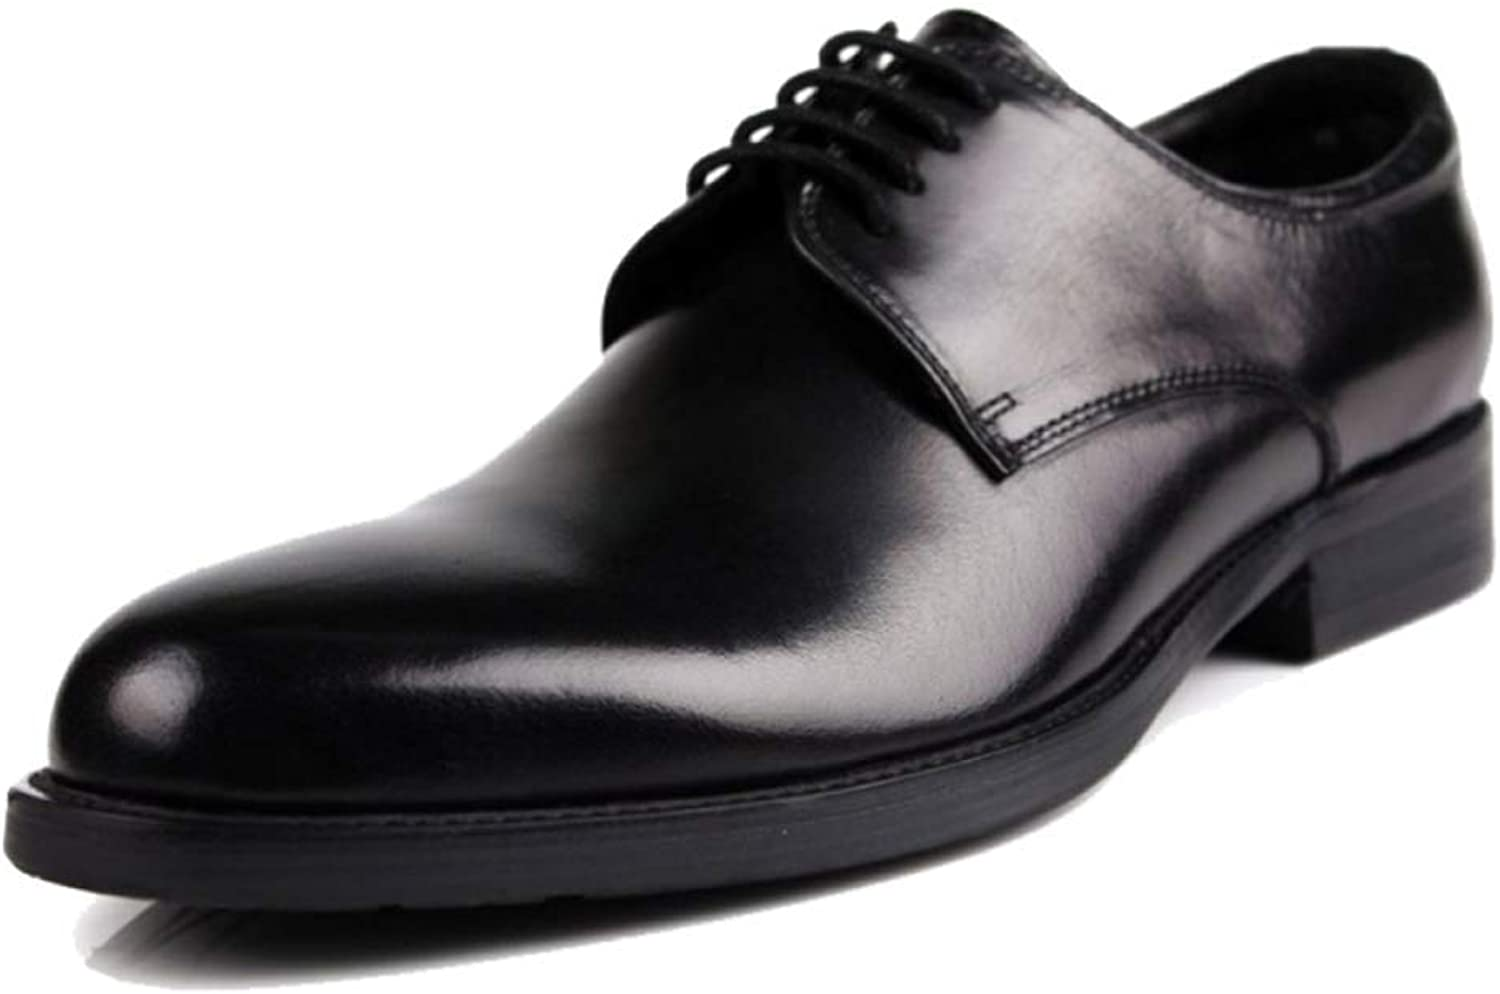 db08f02ba GTYW, Men's, Business Leather Leather Leather Dress shoes, Round Leather  Low shoes, British Casual shoes, 37-44 78bf8e